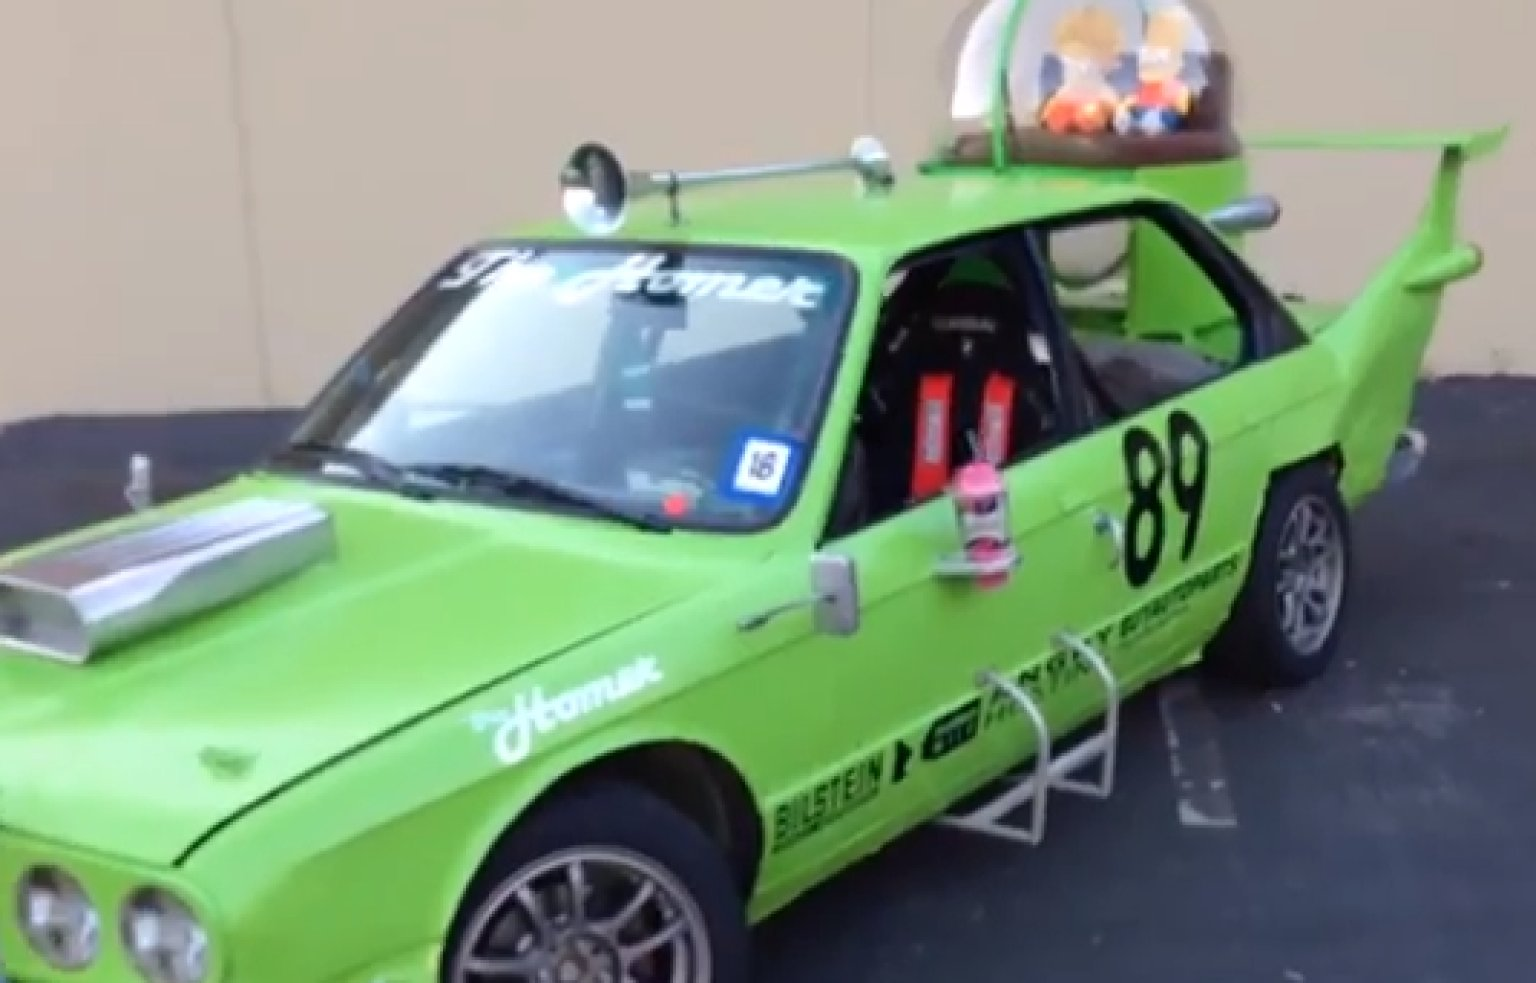 Homer Car: Simpsons' 'The Homer' Car Built For Real (VIDEO)